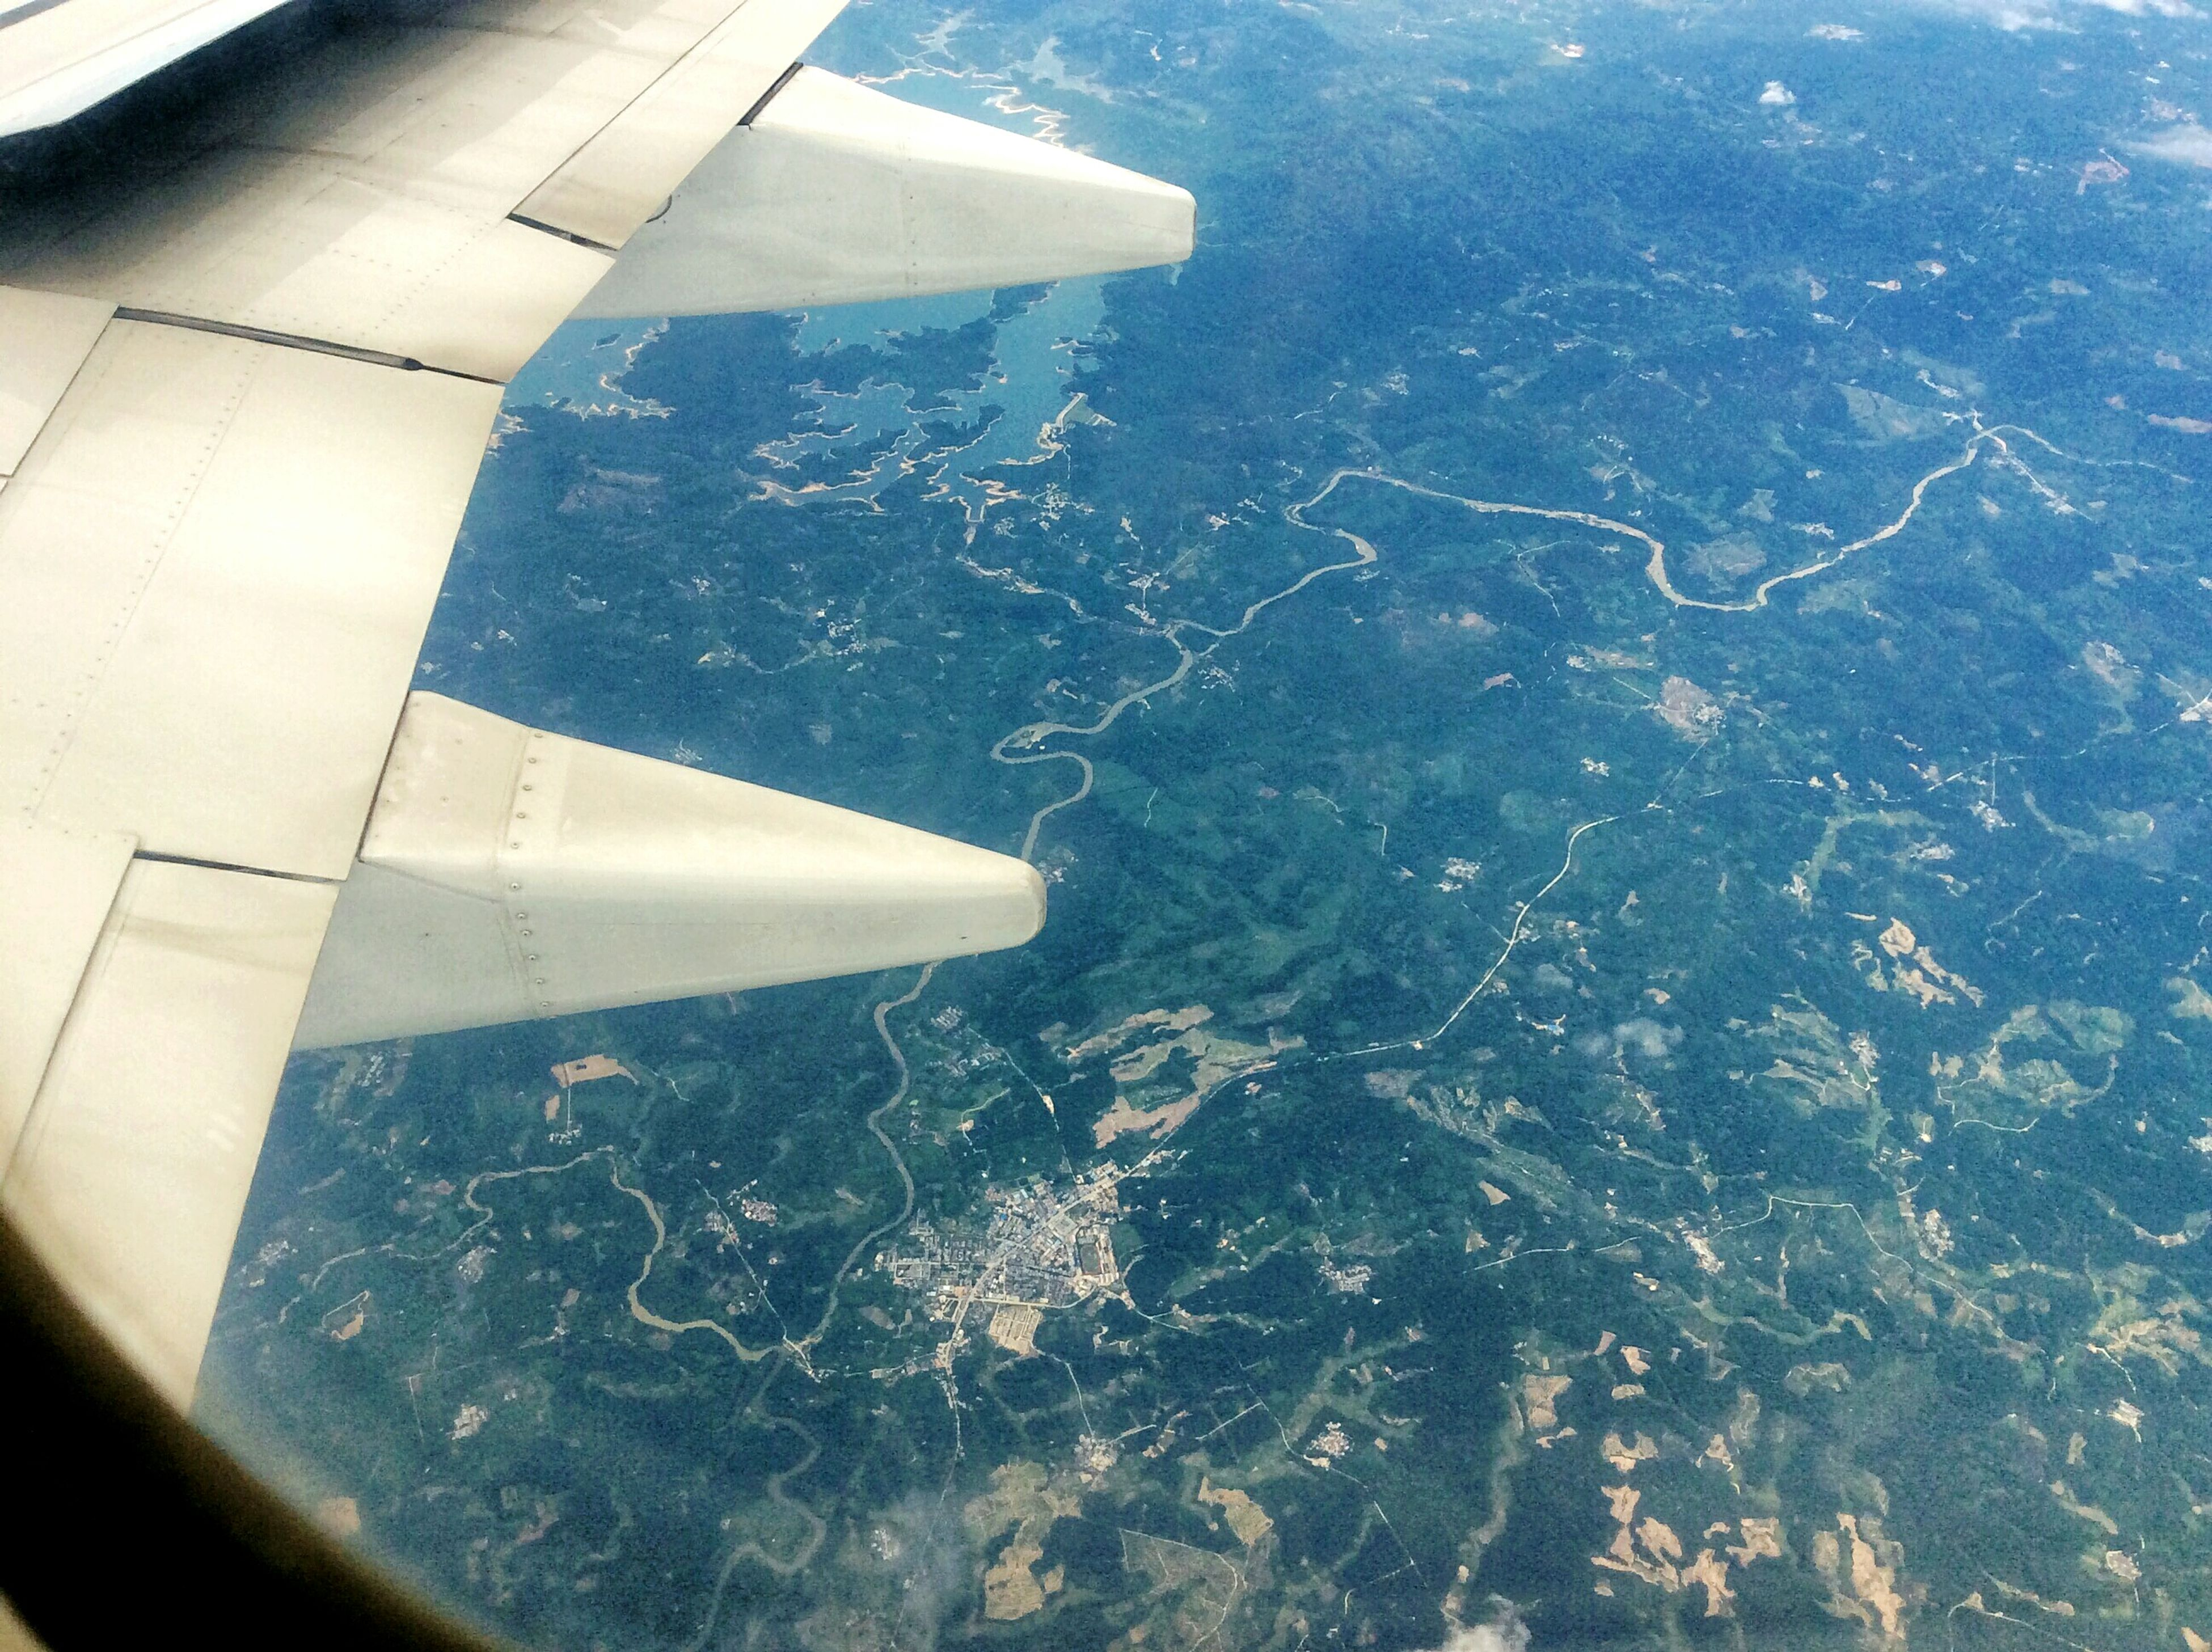 airplane, transportation, air vehicle, aerial view, flying, aircraft wing, mode of transport, part of, mid-air, cropped, travel, on the move, landscape, scenics, journey, nature, beauty in nature, water, sea, mountain